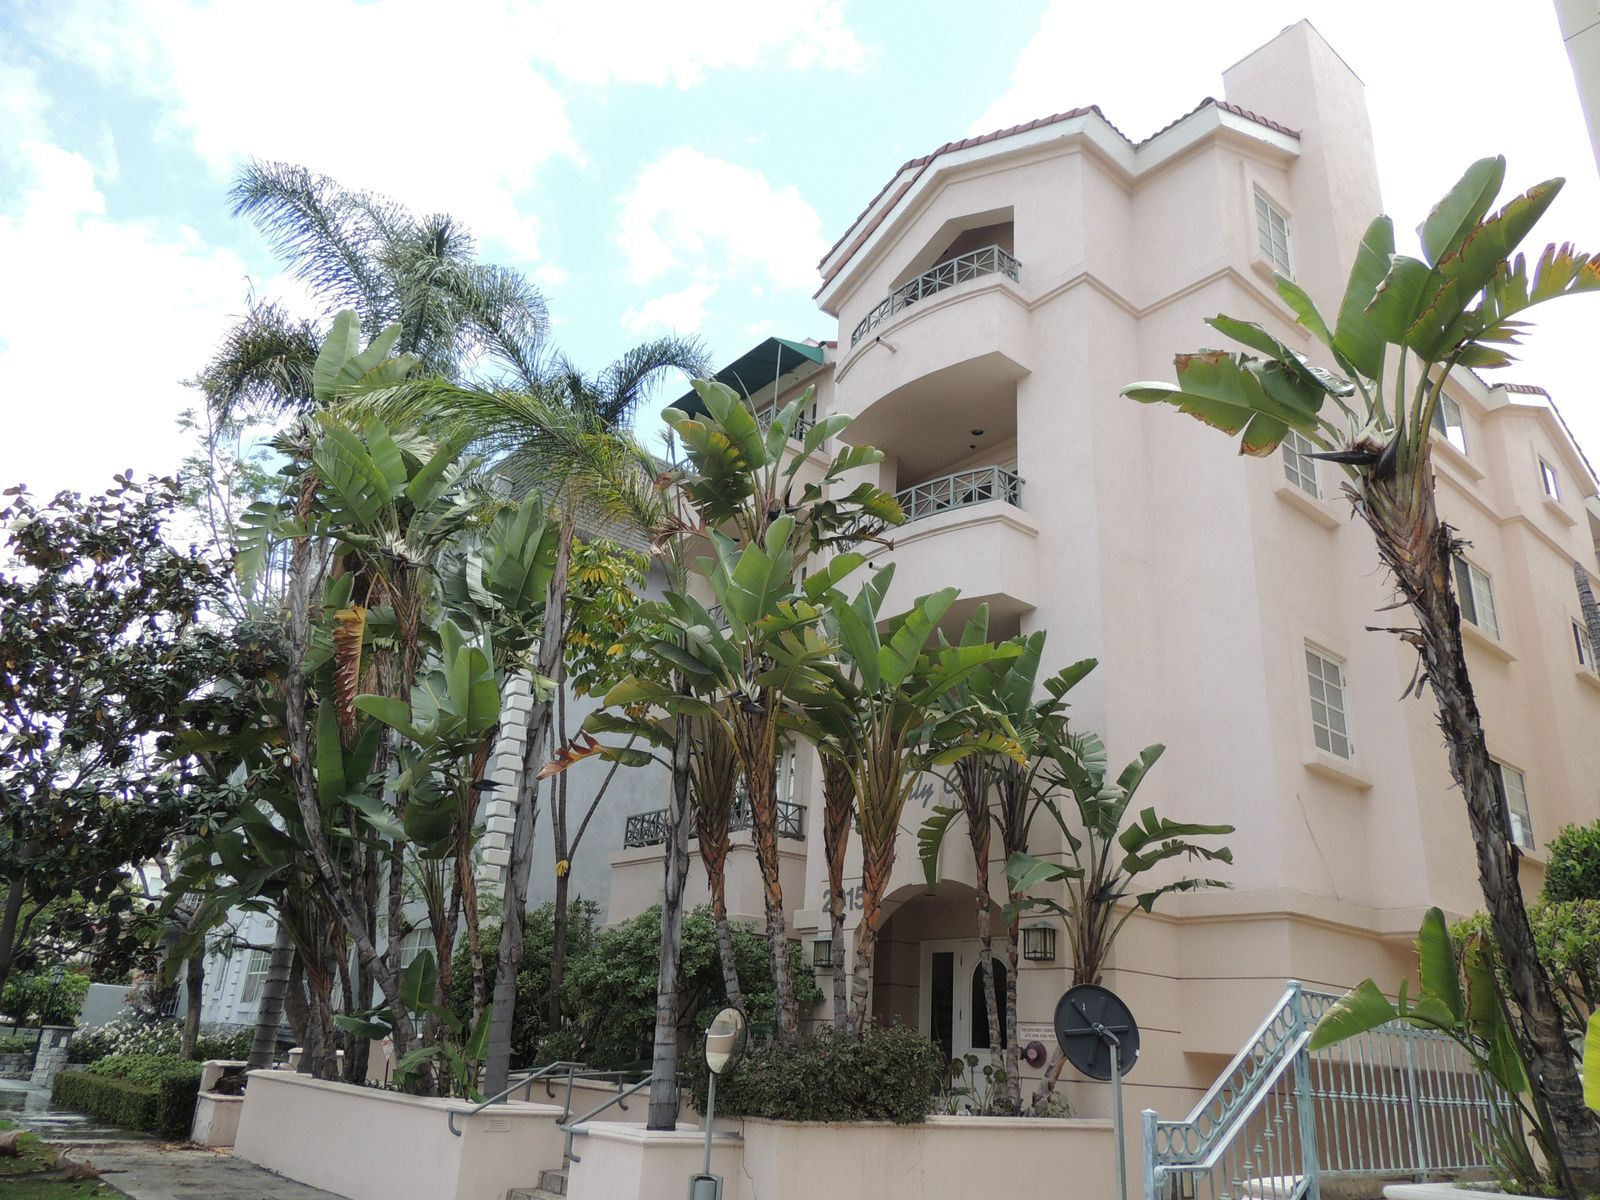 2015 South Beverly Glen, Los Angeles CA Condominium - Los Angeles Real Estate